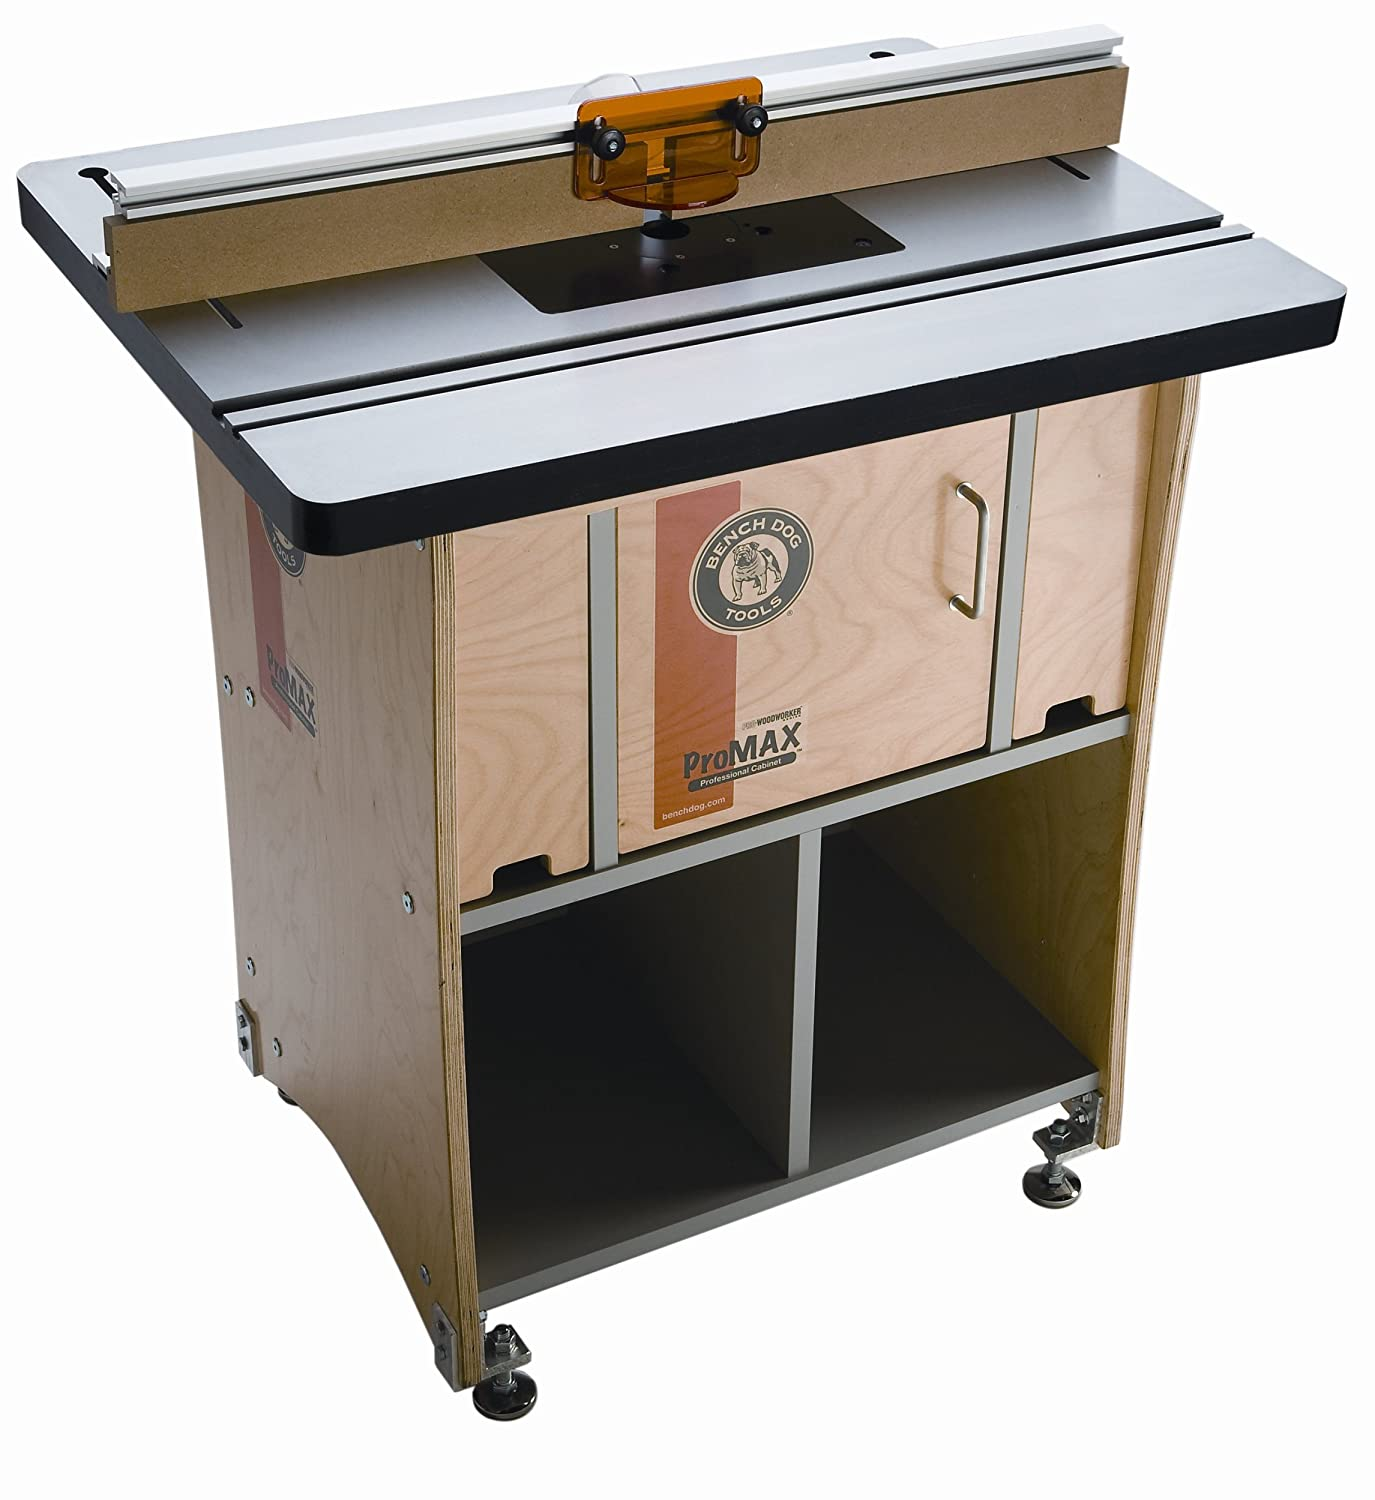 Outstanding Bench Dog 40 300 Promax Rt Complete Router Tables Amazon Com Forskolin Free Trial Chair Design Images Forskolin Free Trialorg